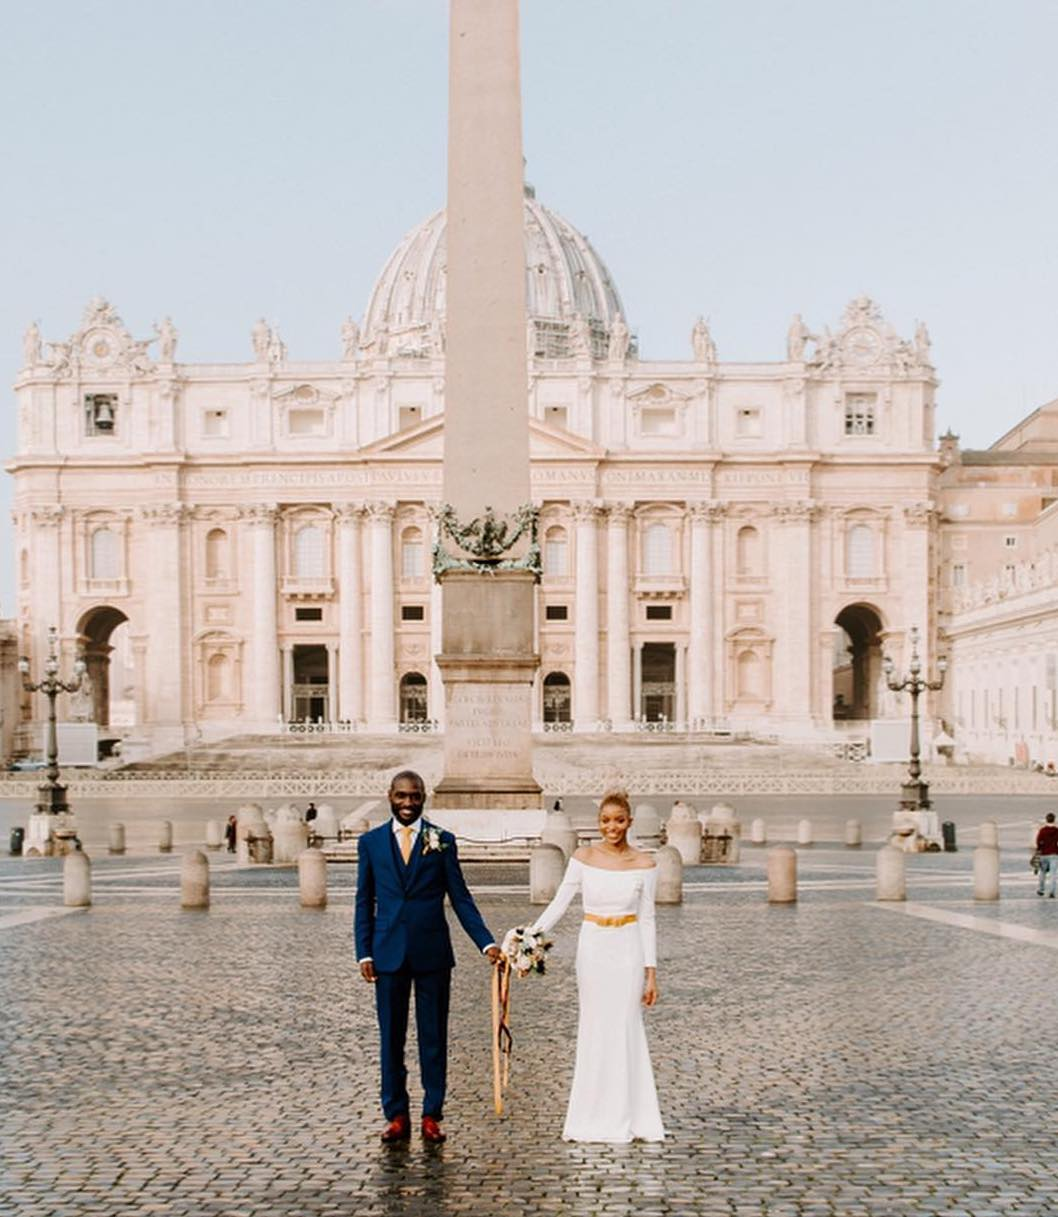 Bride and Groom holding hands in Italian plaza